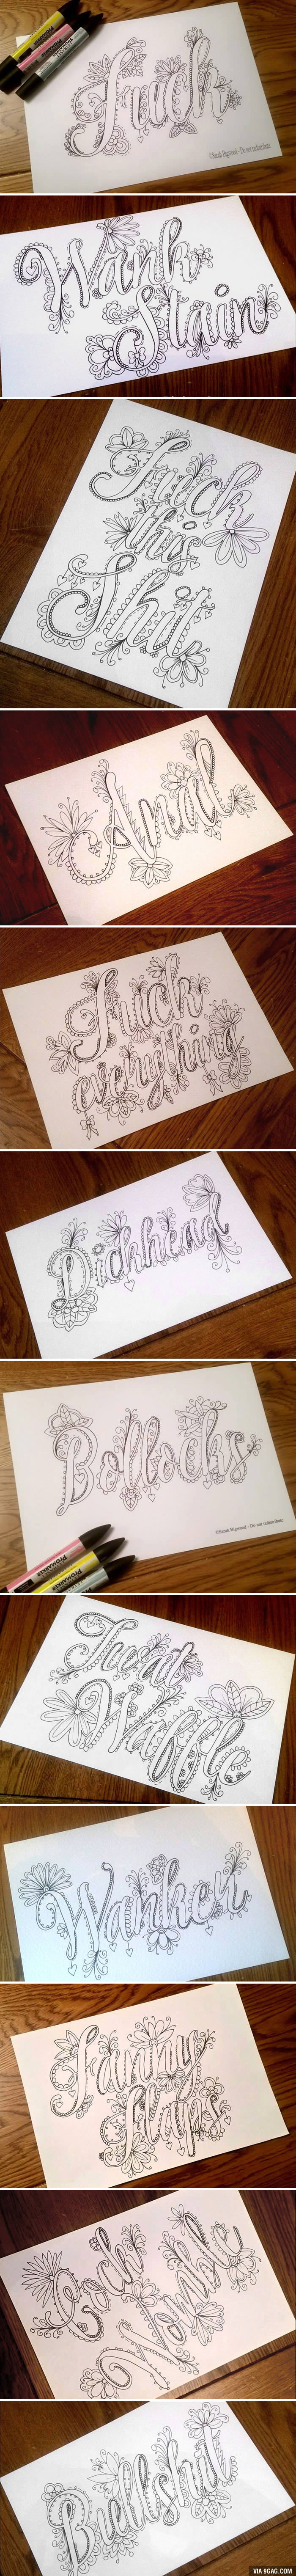 Fancy swear words coloring book - This Fancy Swear Word Coloring Book Will Stop You From Swearing To Coloring